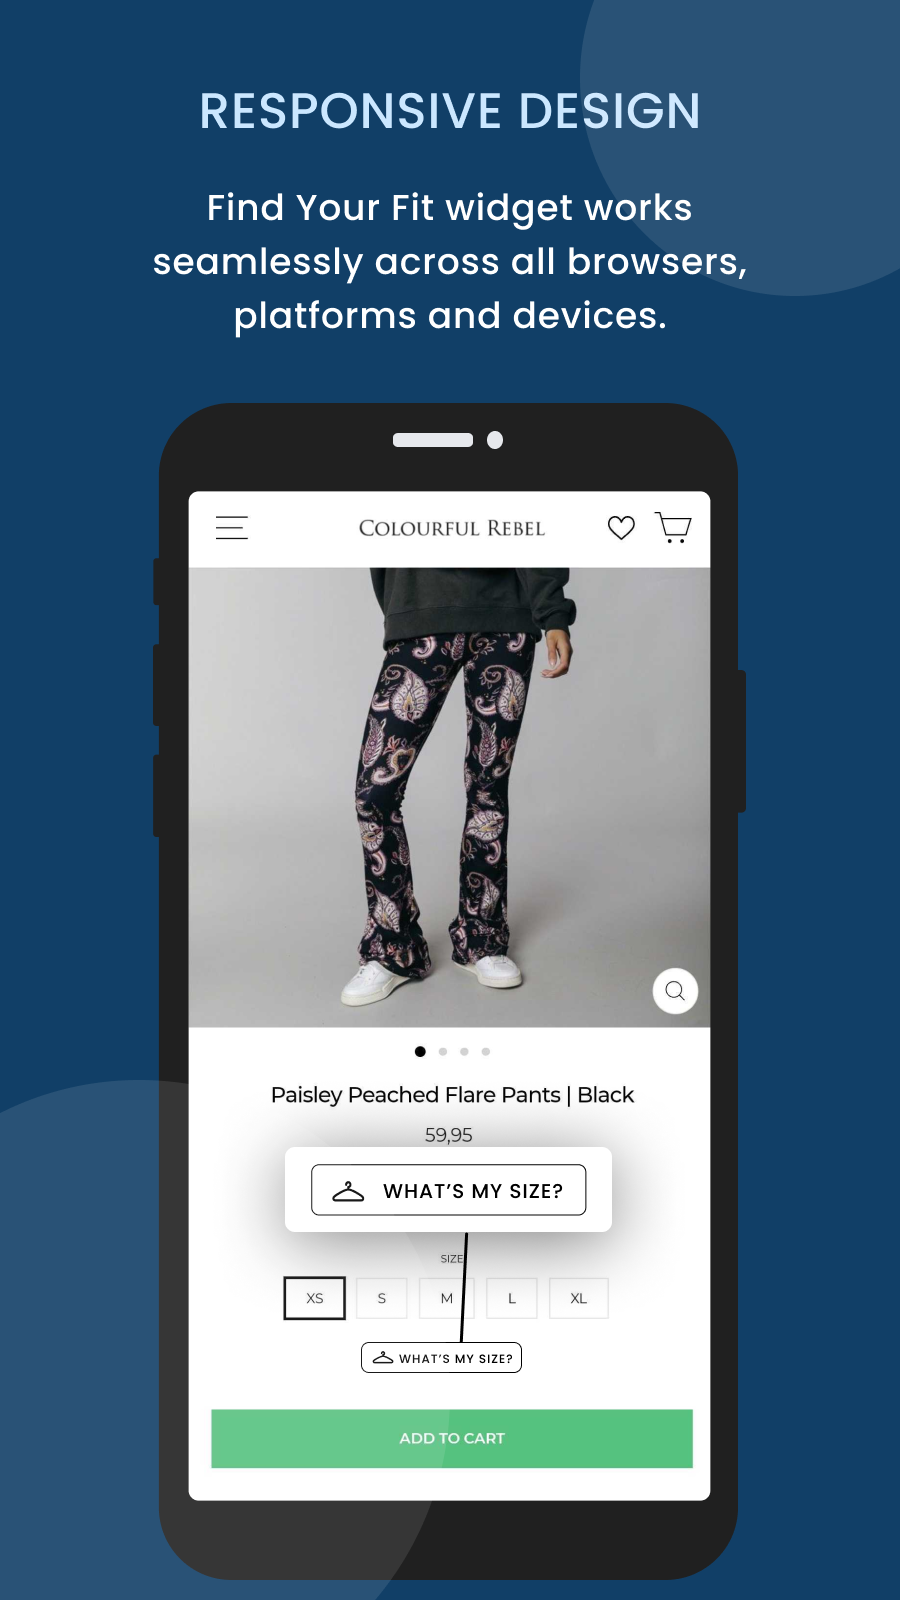 Mobile size recommender